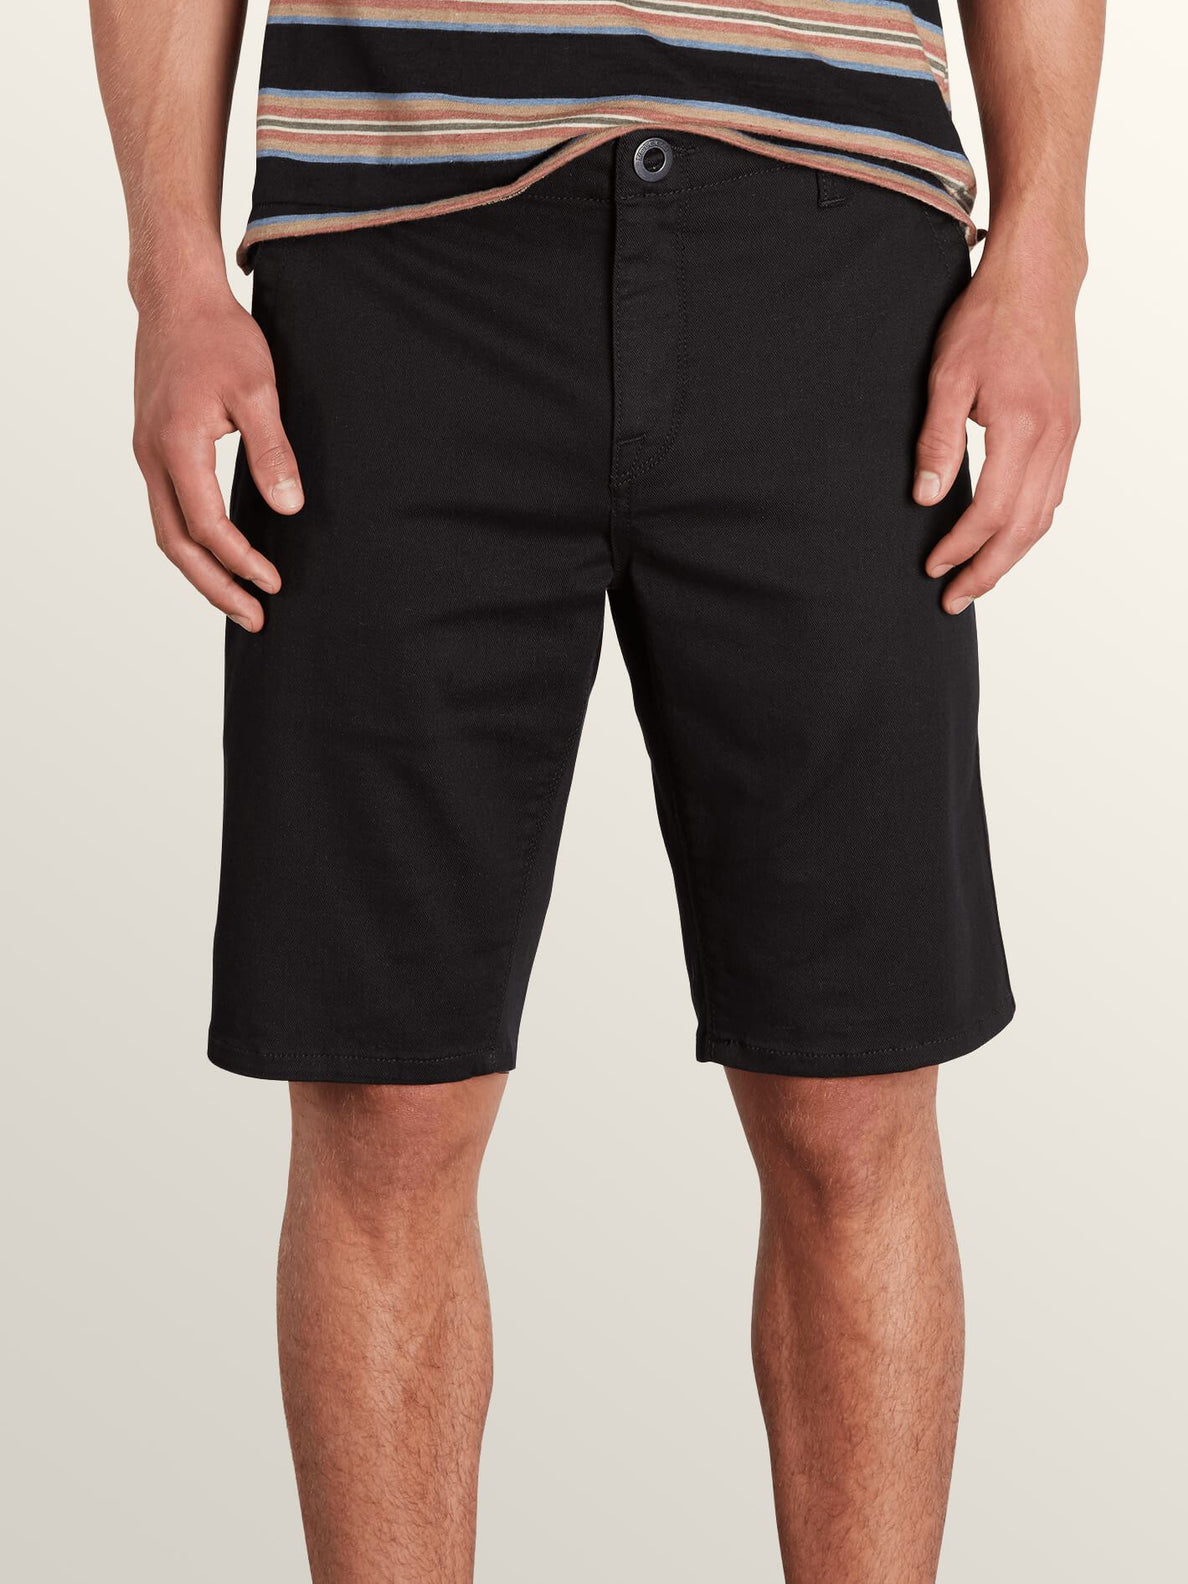 Vsm Prowler Shorts In Black, Front View